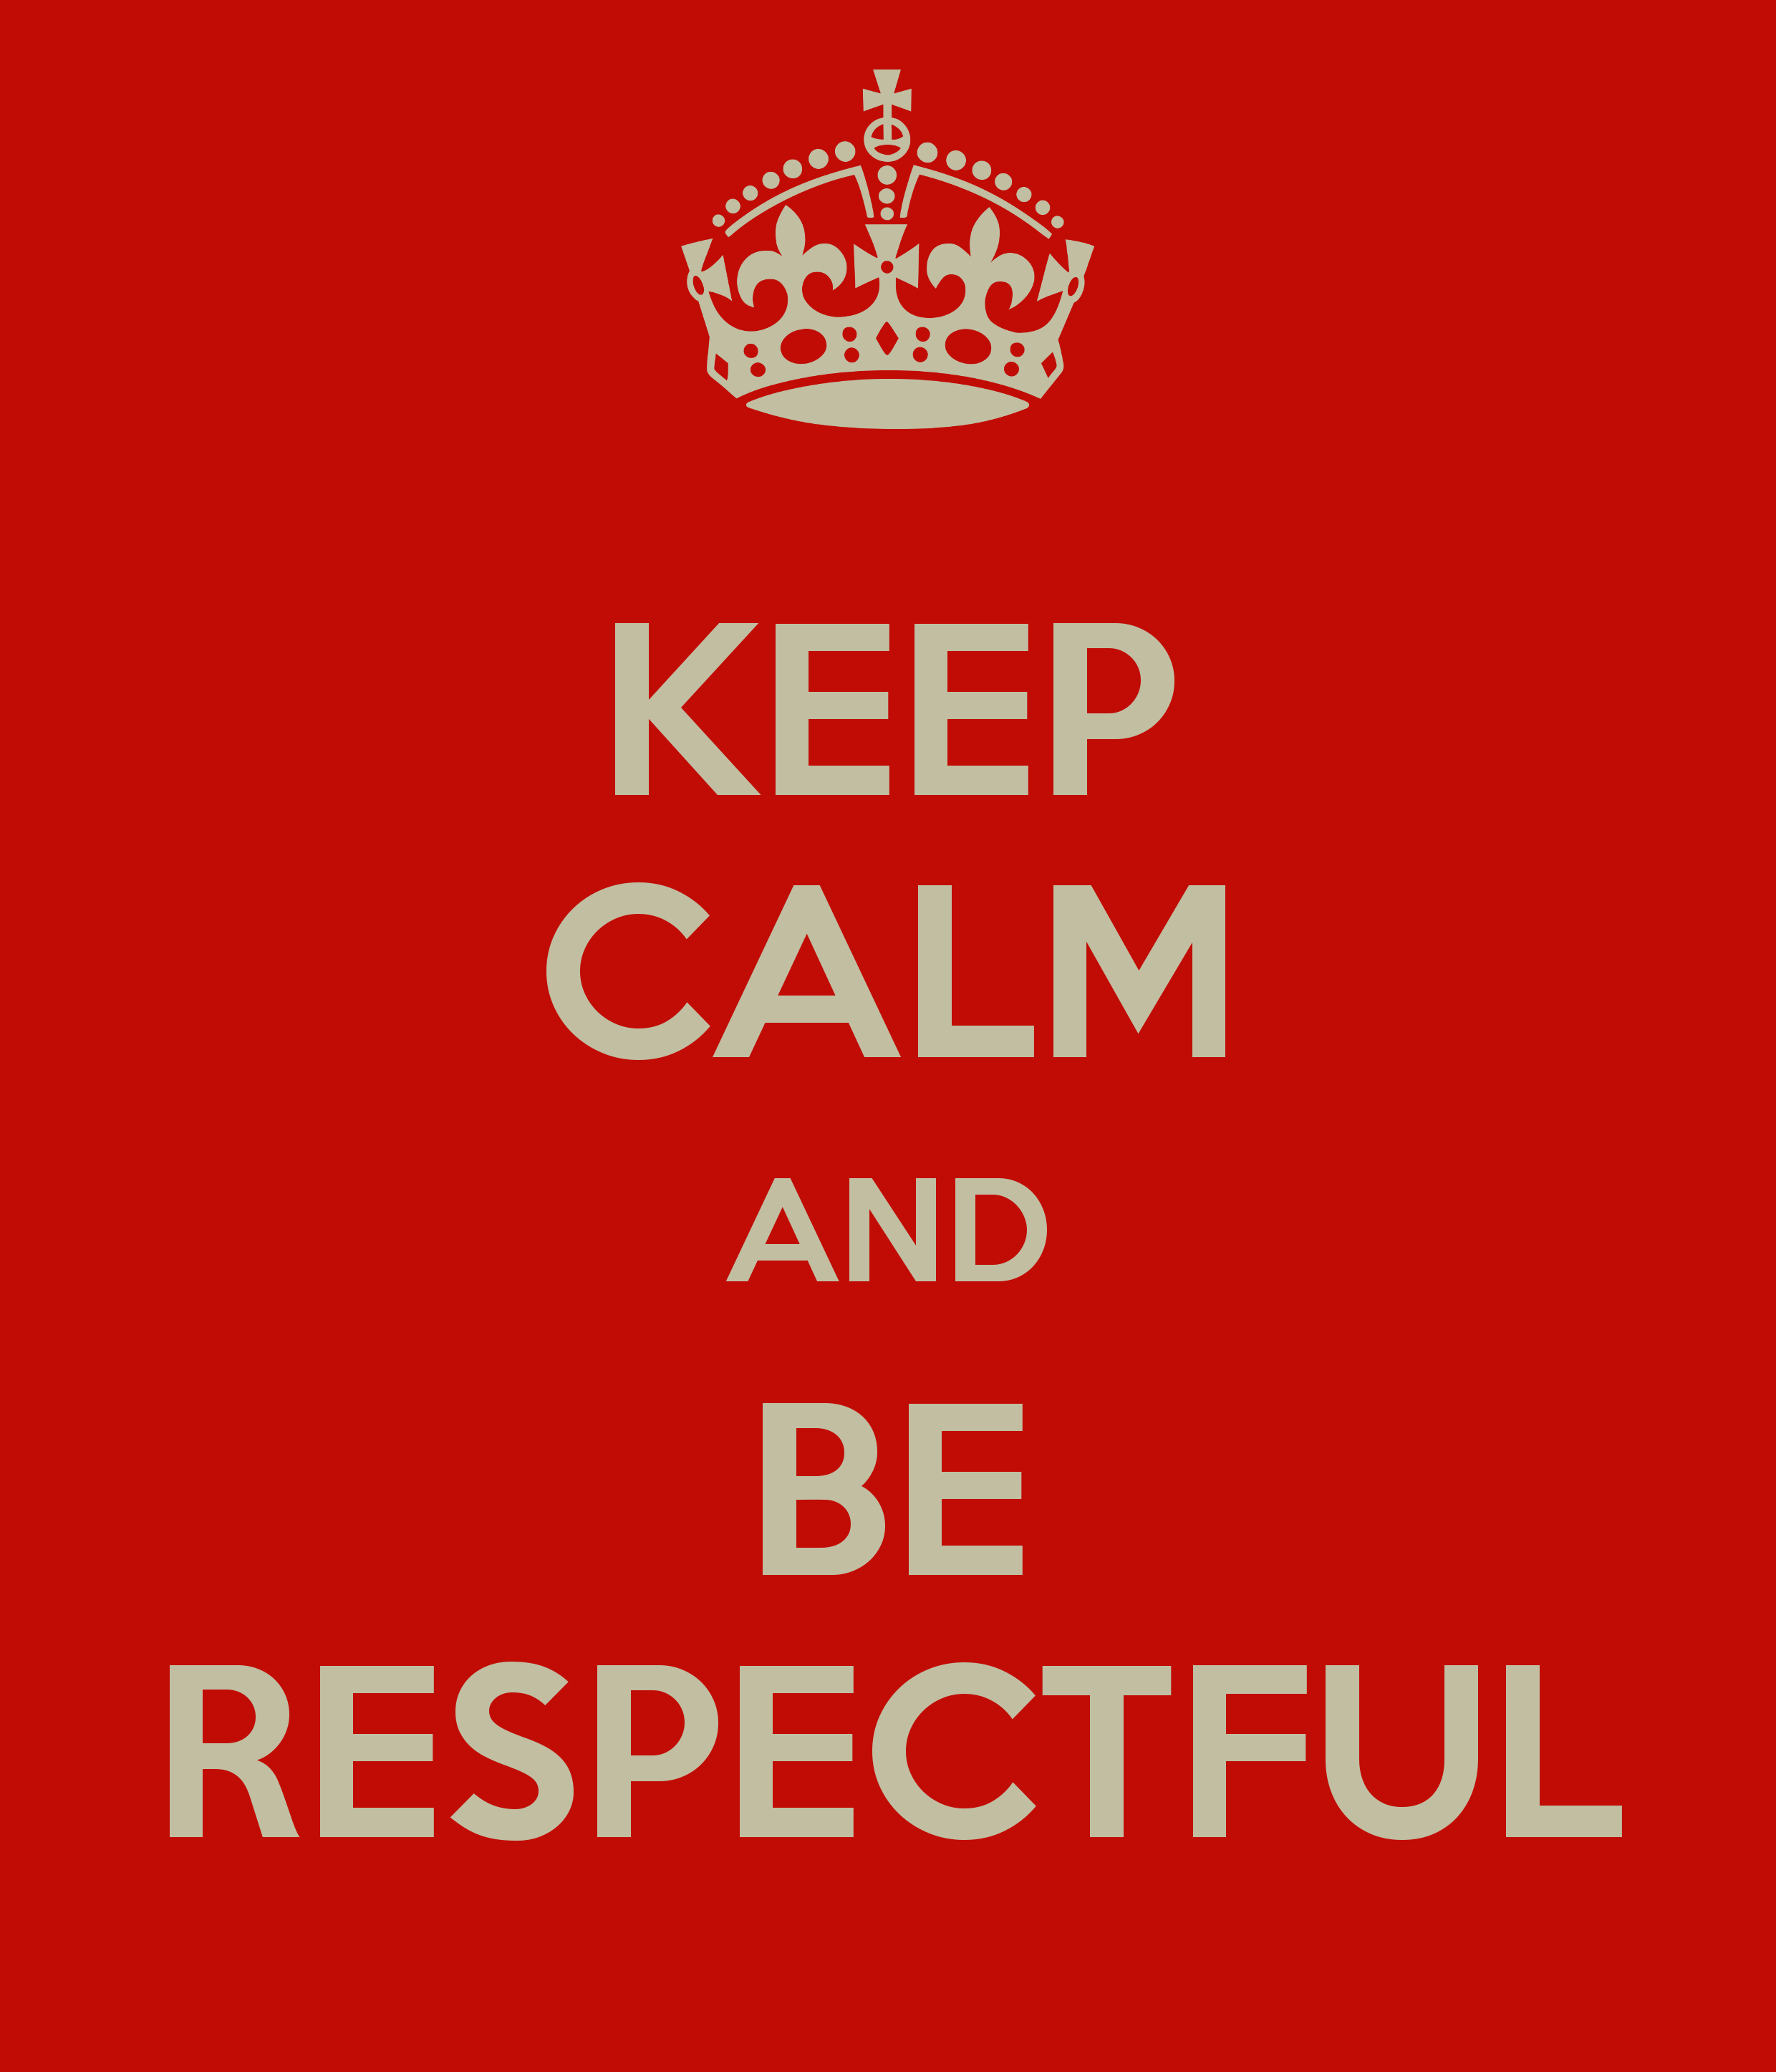 Free Respectful Pictures Download Free Clip Art Free